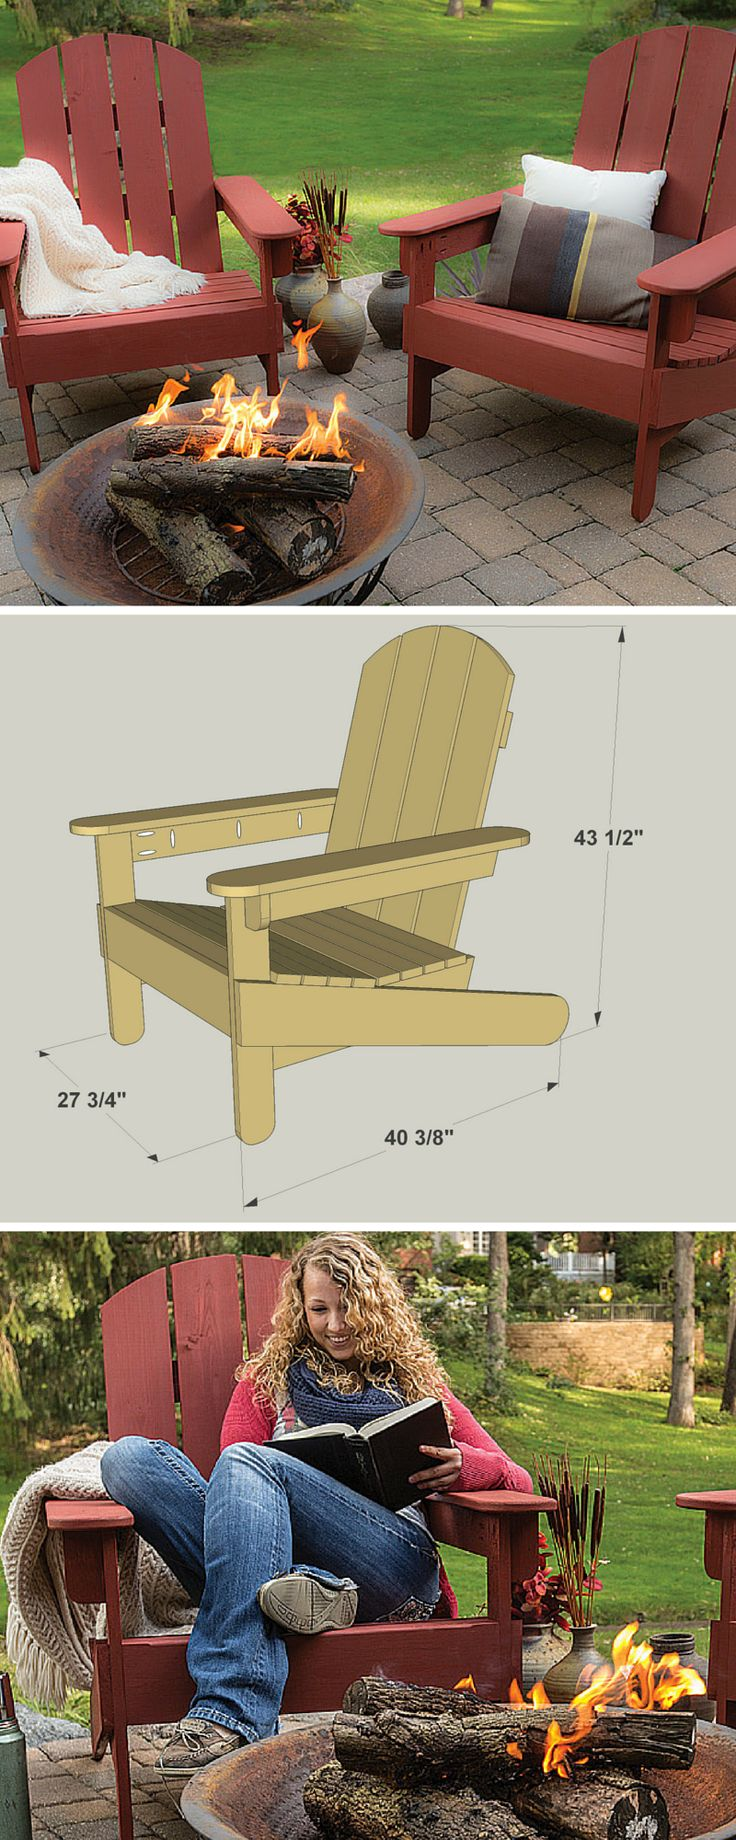 Just about everybody recognizes the classic lines of an Adirondack chair, and would like to have one or two somewhere in their outdoor living space. And why not? These chairs look great and are very comfortable. As you'll find out with this plan, an Adirondack chair is also easy to build. Get the free DIY plans at buildsomething.com